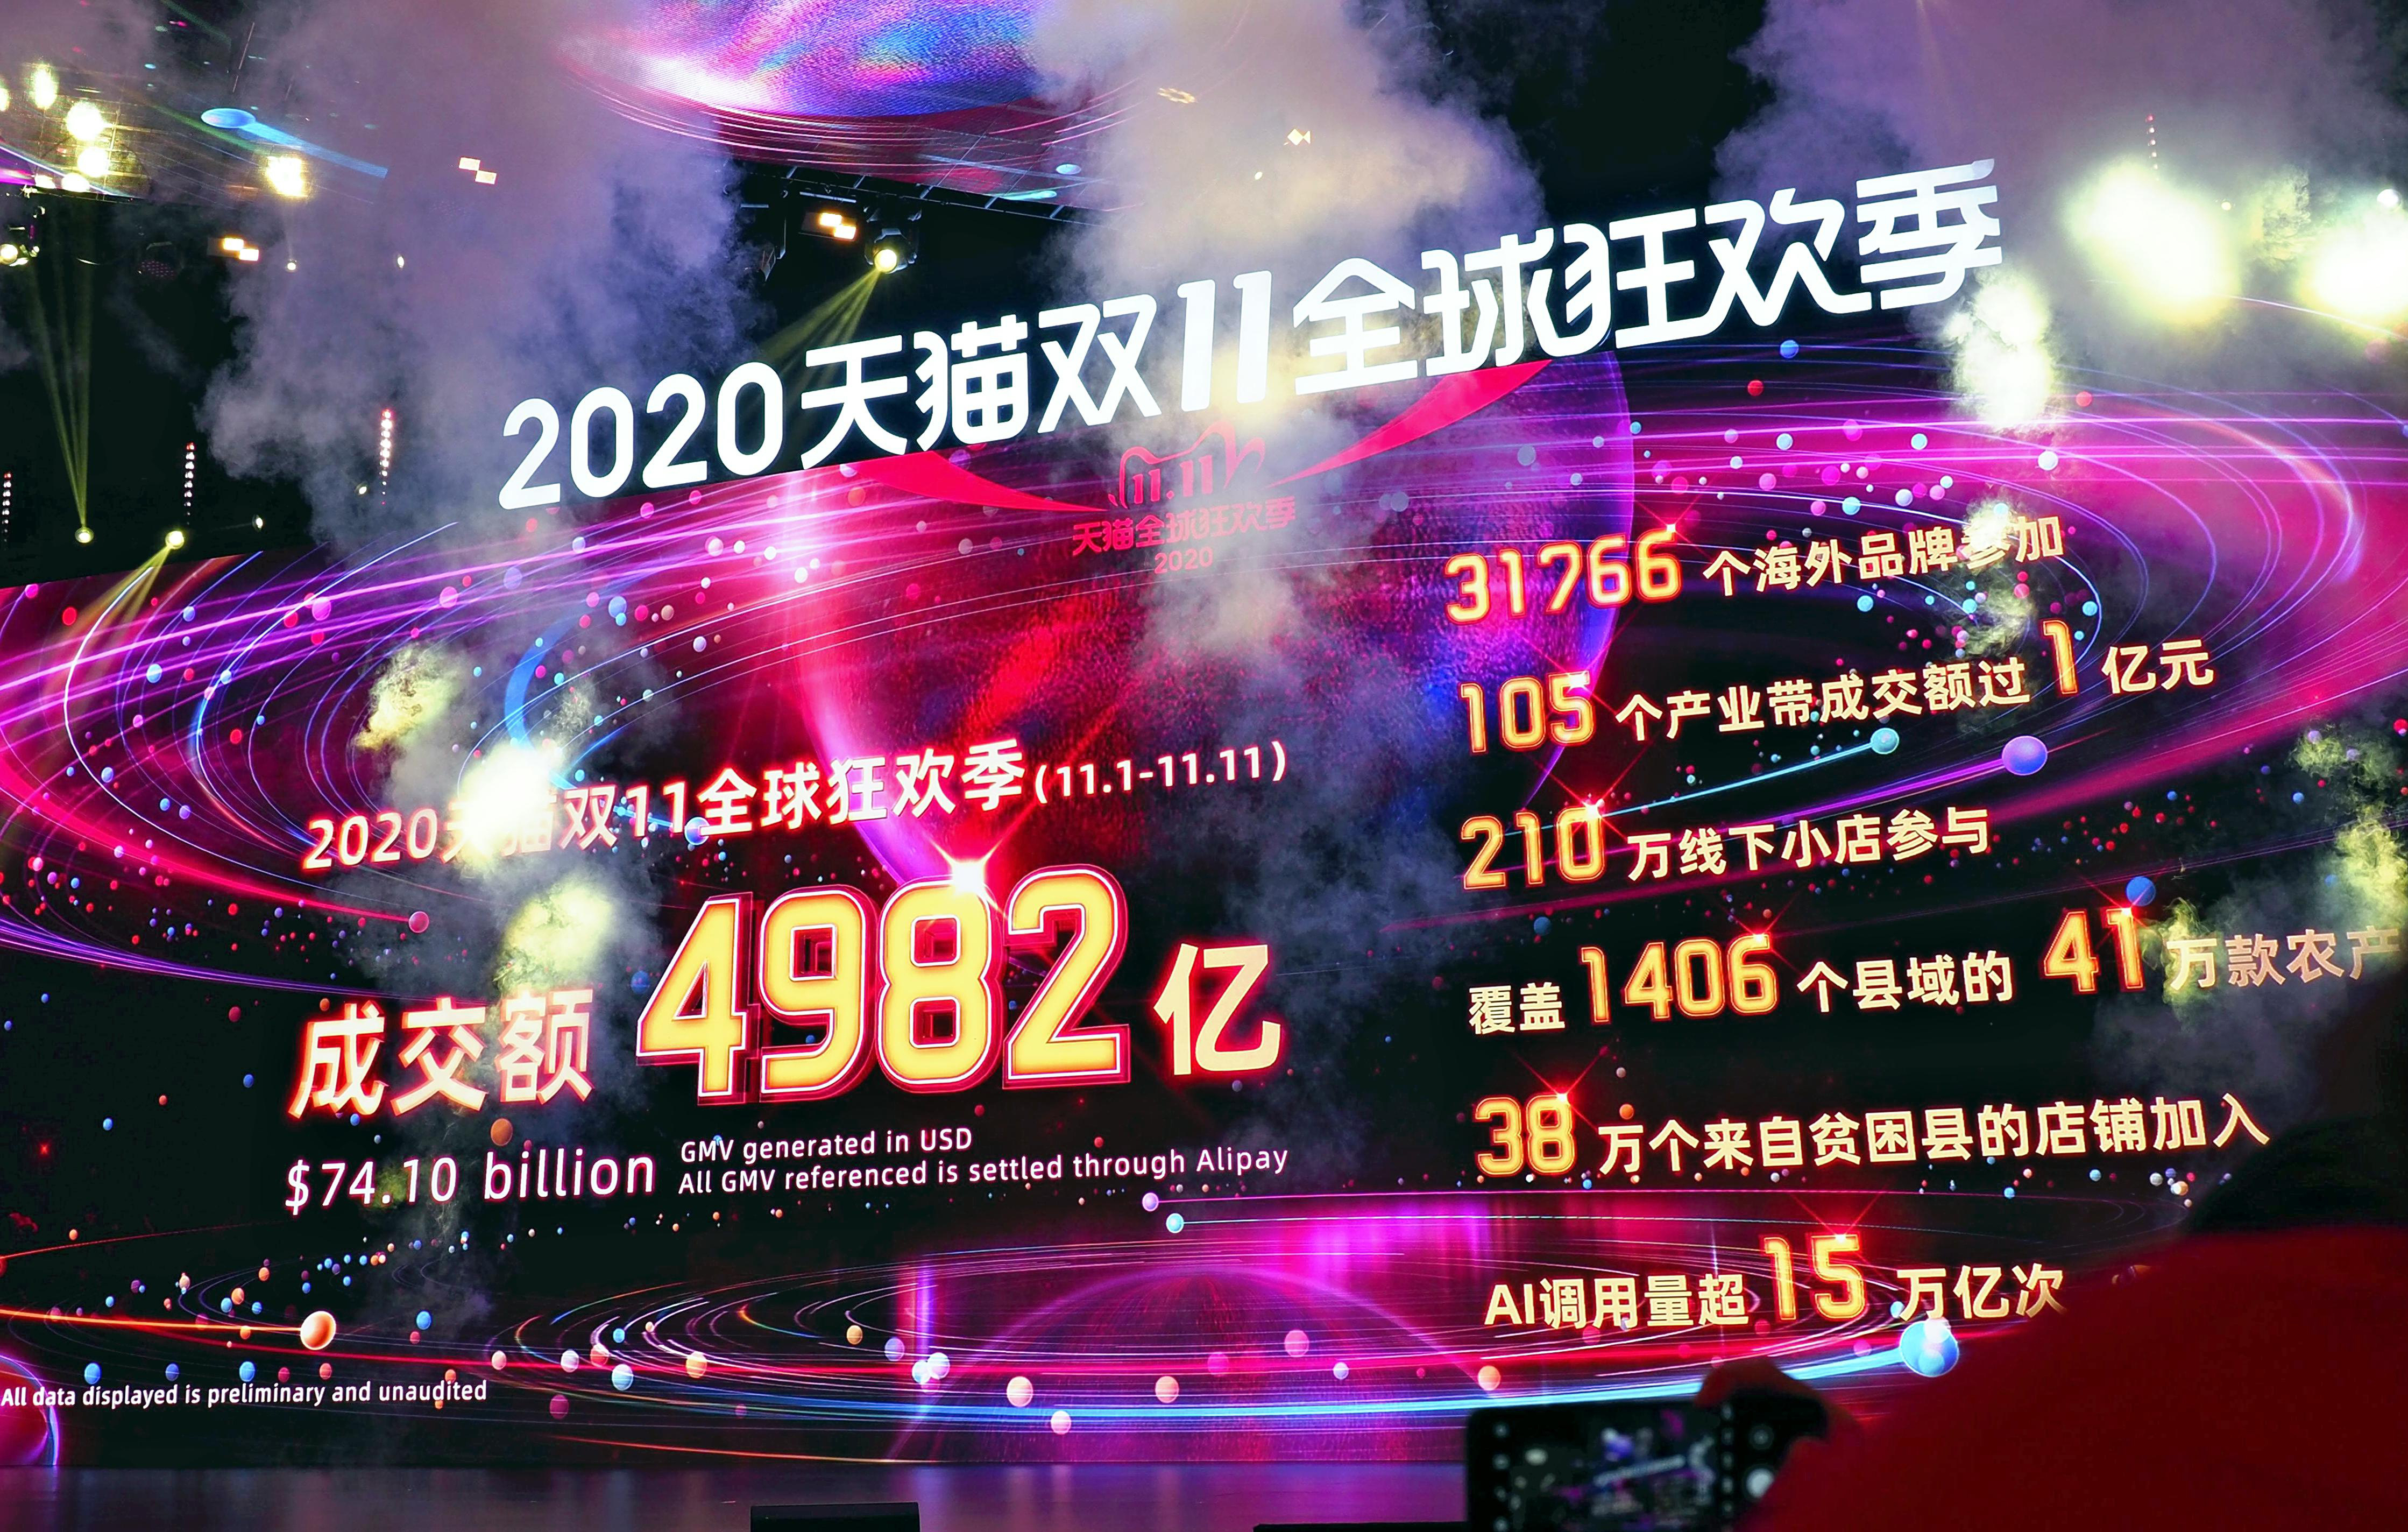 A monitor shows the total sales on Alibaba Group Holding's e-commerce platform reached 498.2 billion yuan (about US$74 billion) at its sale campaign of China's Singles day in Hangzhou